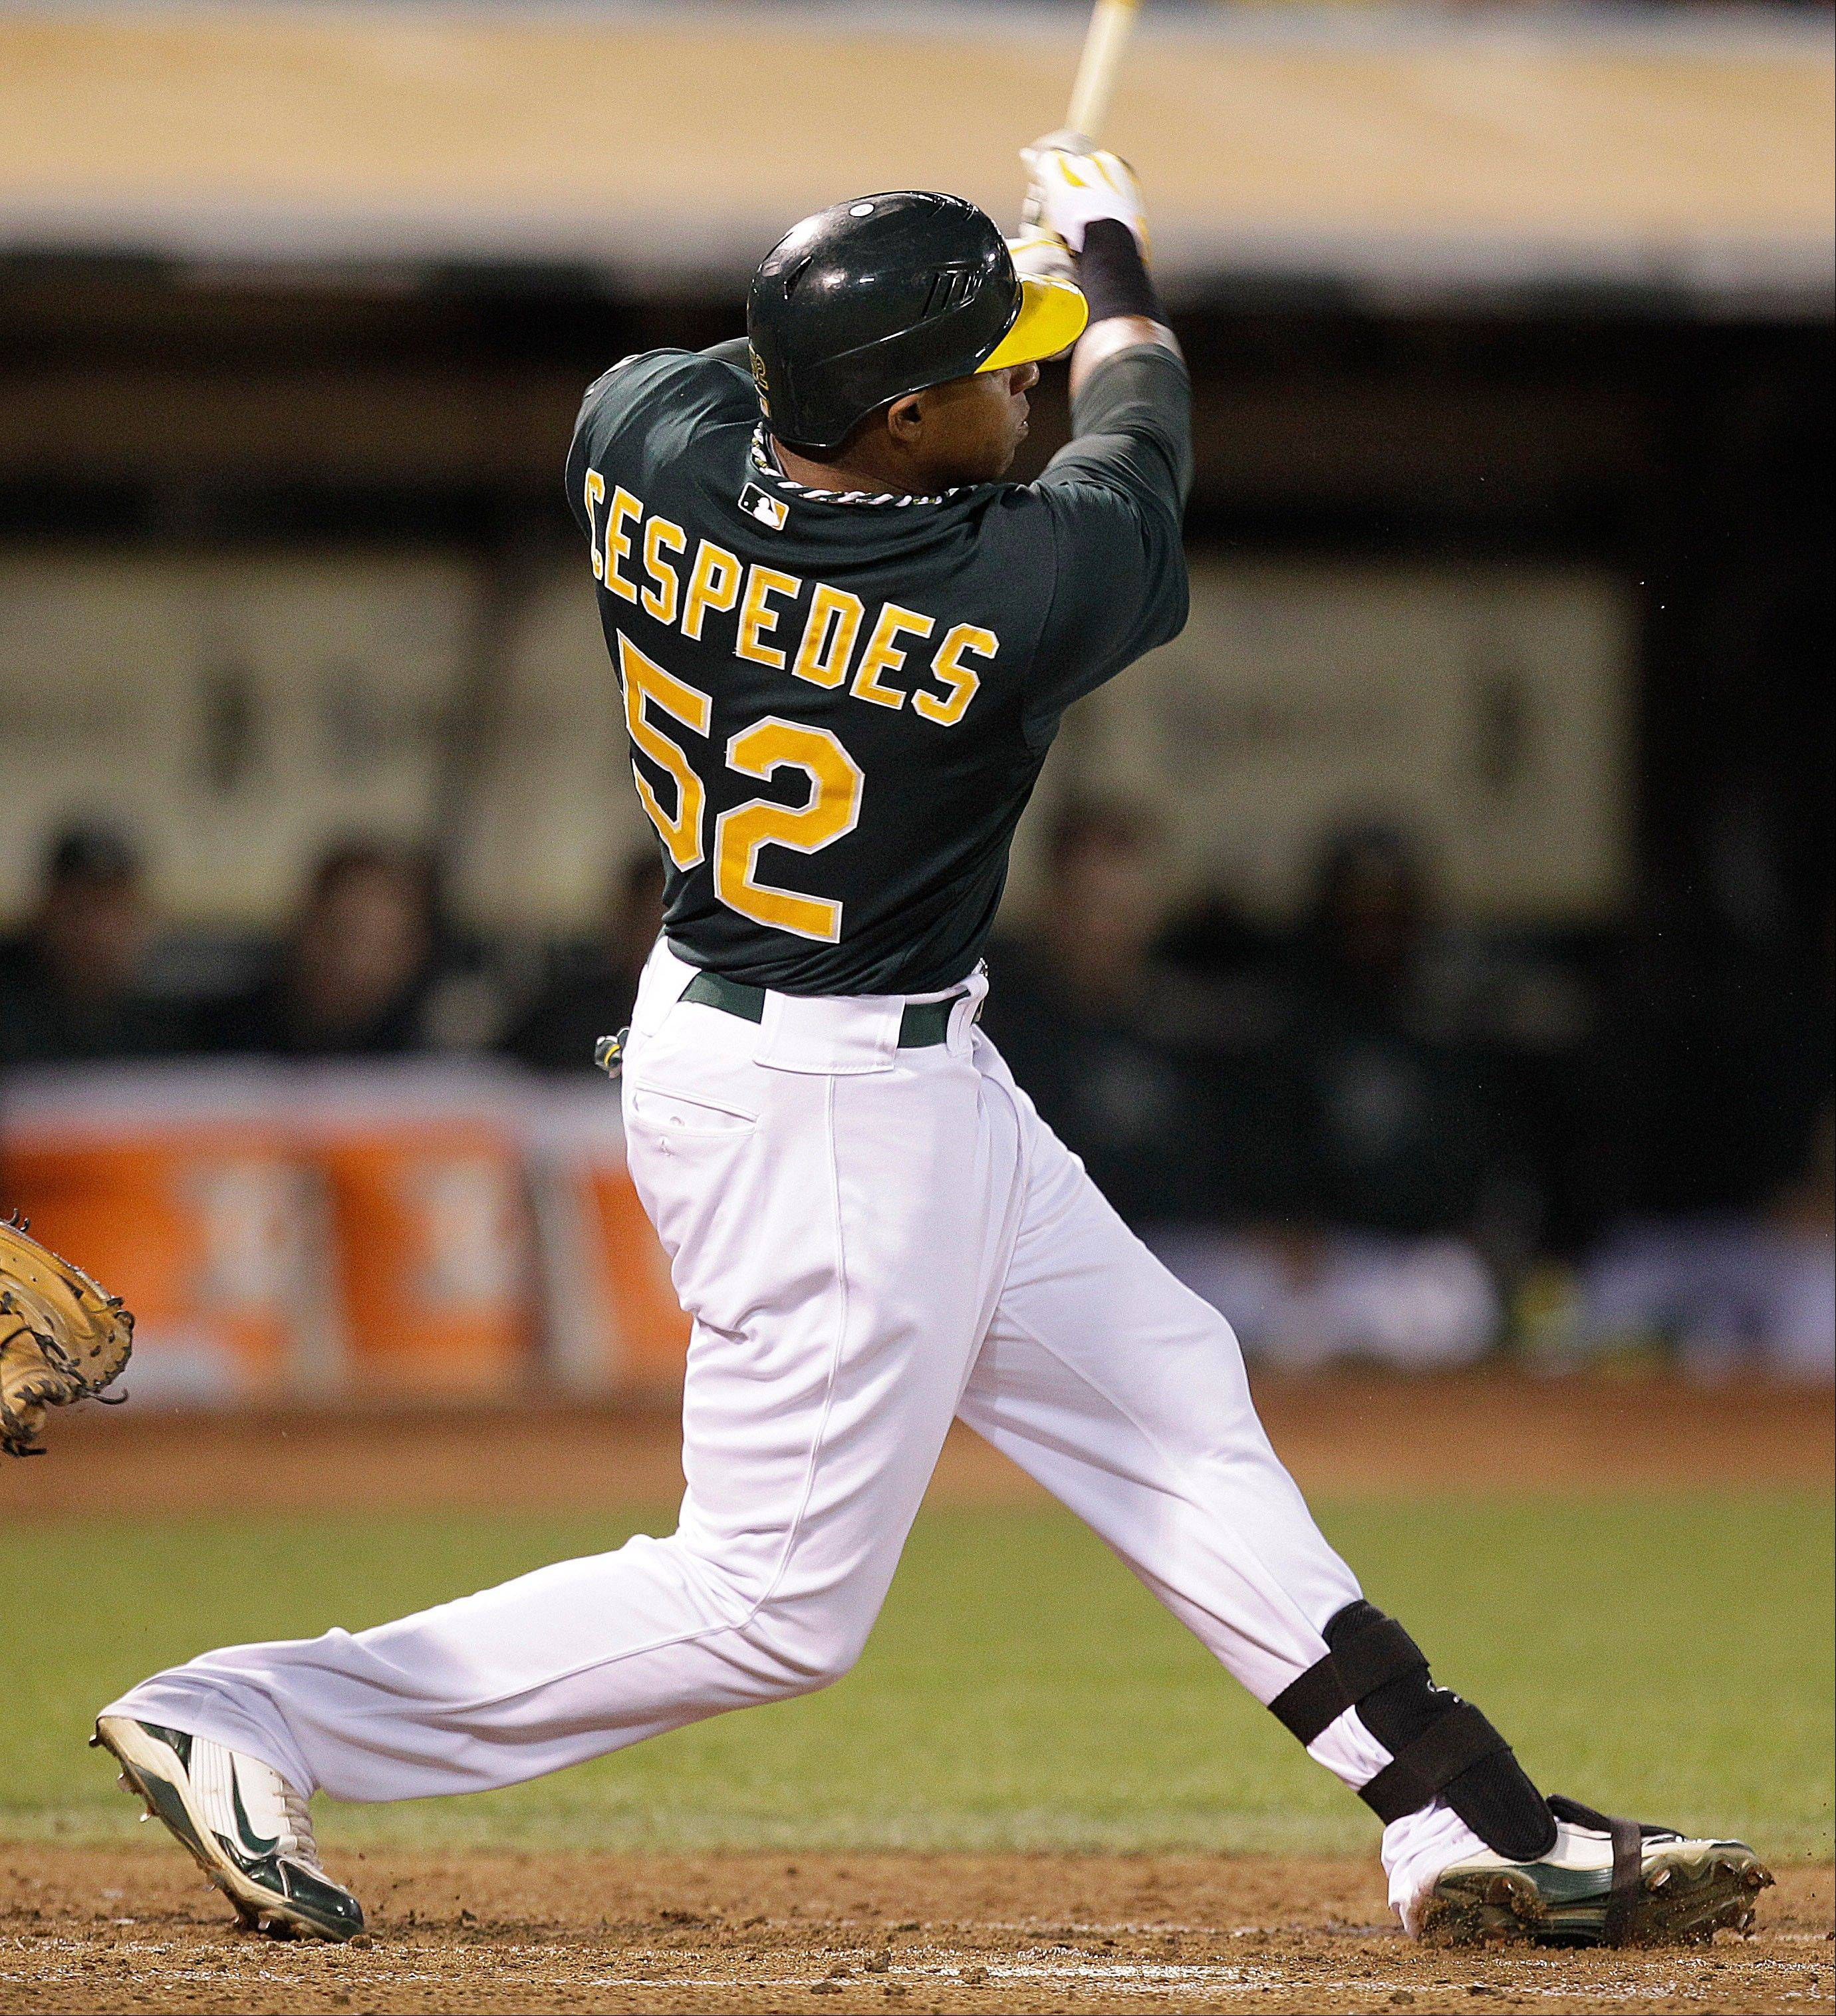 The Athletics' Yoenis Cespedes swings for a two-run home run off Baltimore's Joe Saunders in the fourth inning Friday in Oakland, Calif.